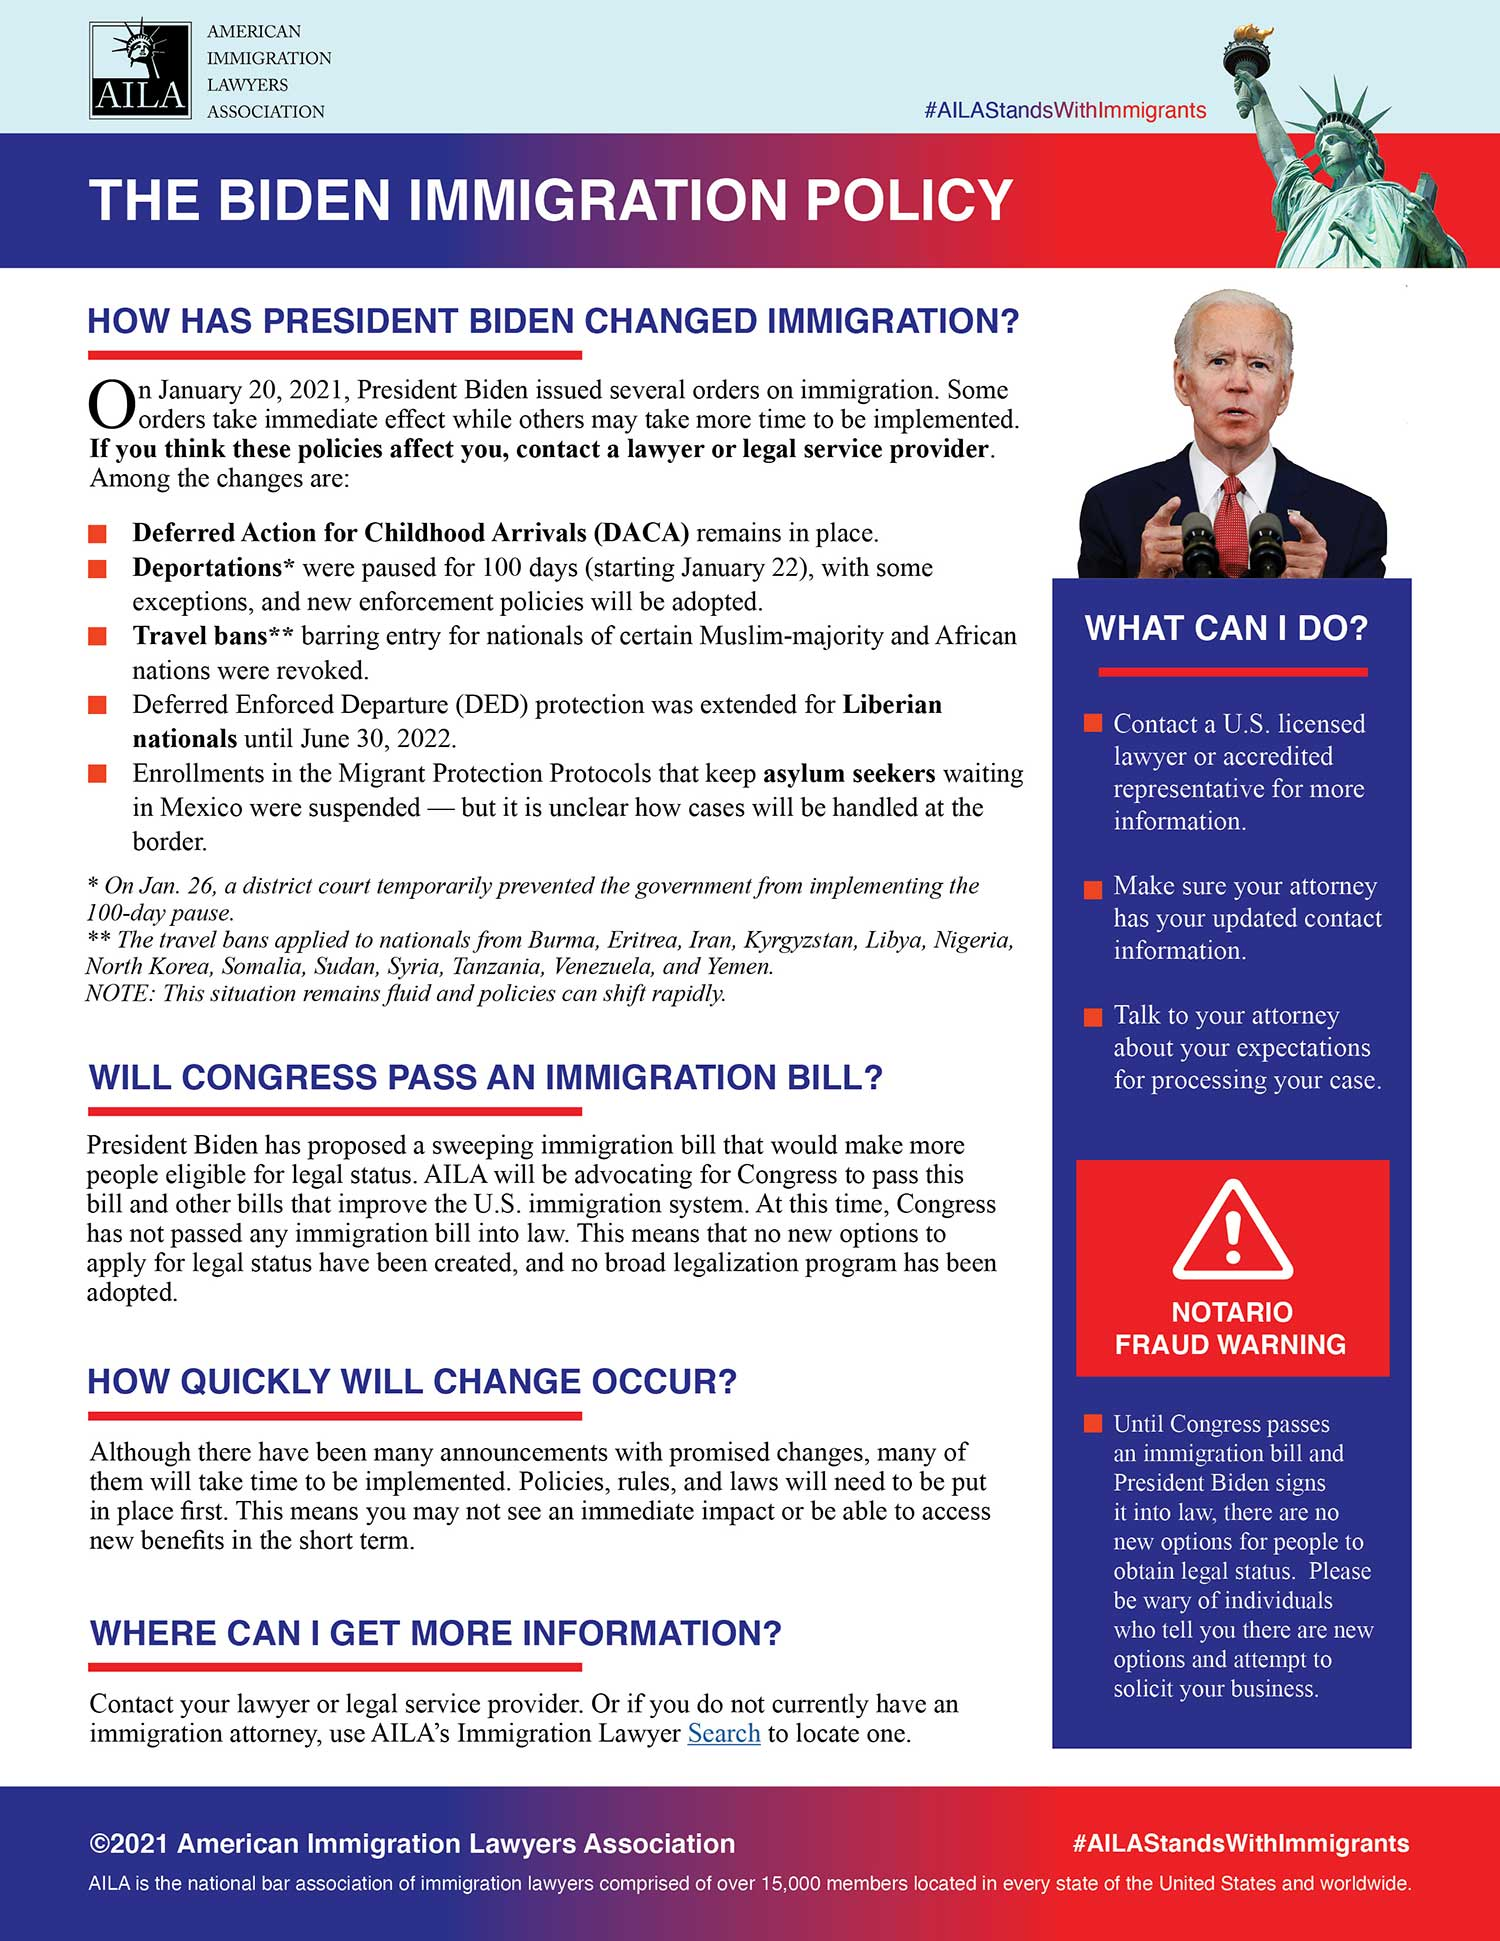 President Biden issued several orders on immigration. Some orders take immediate effect while others may take more time to be implemented.